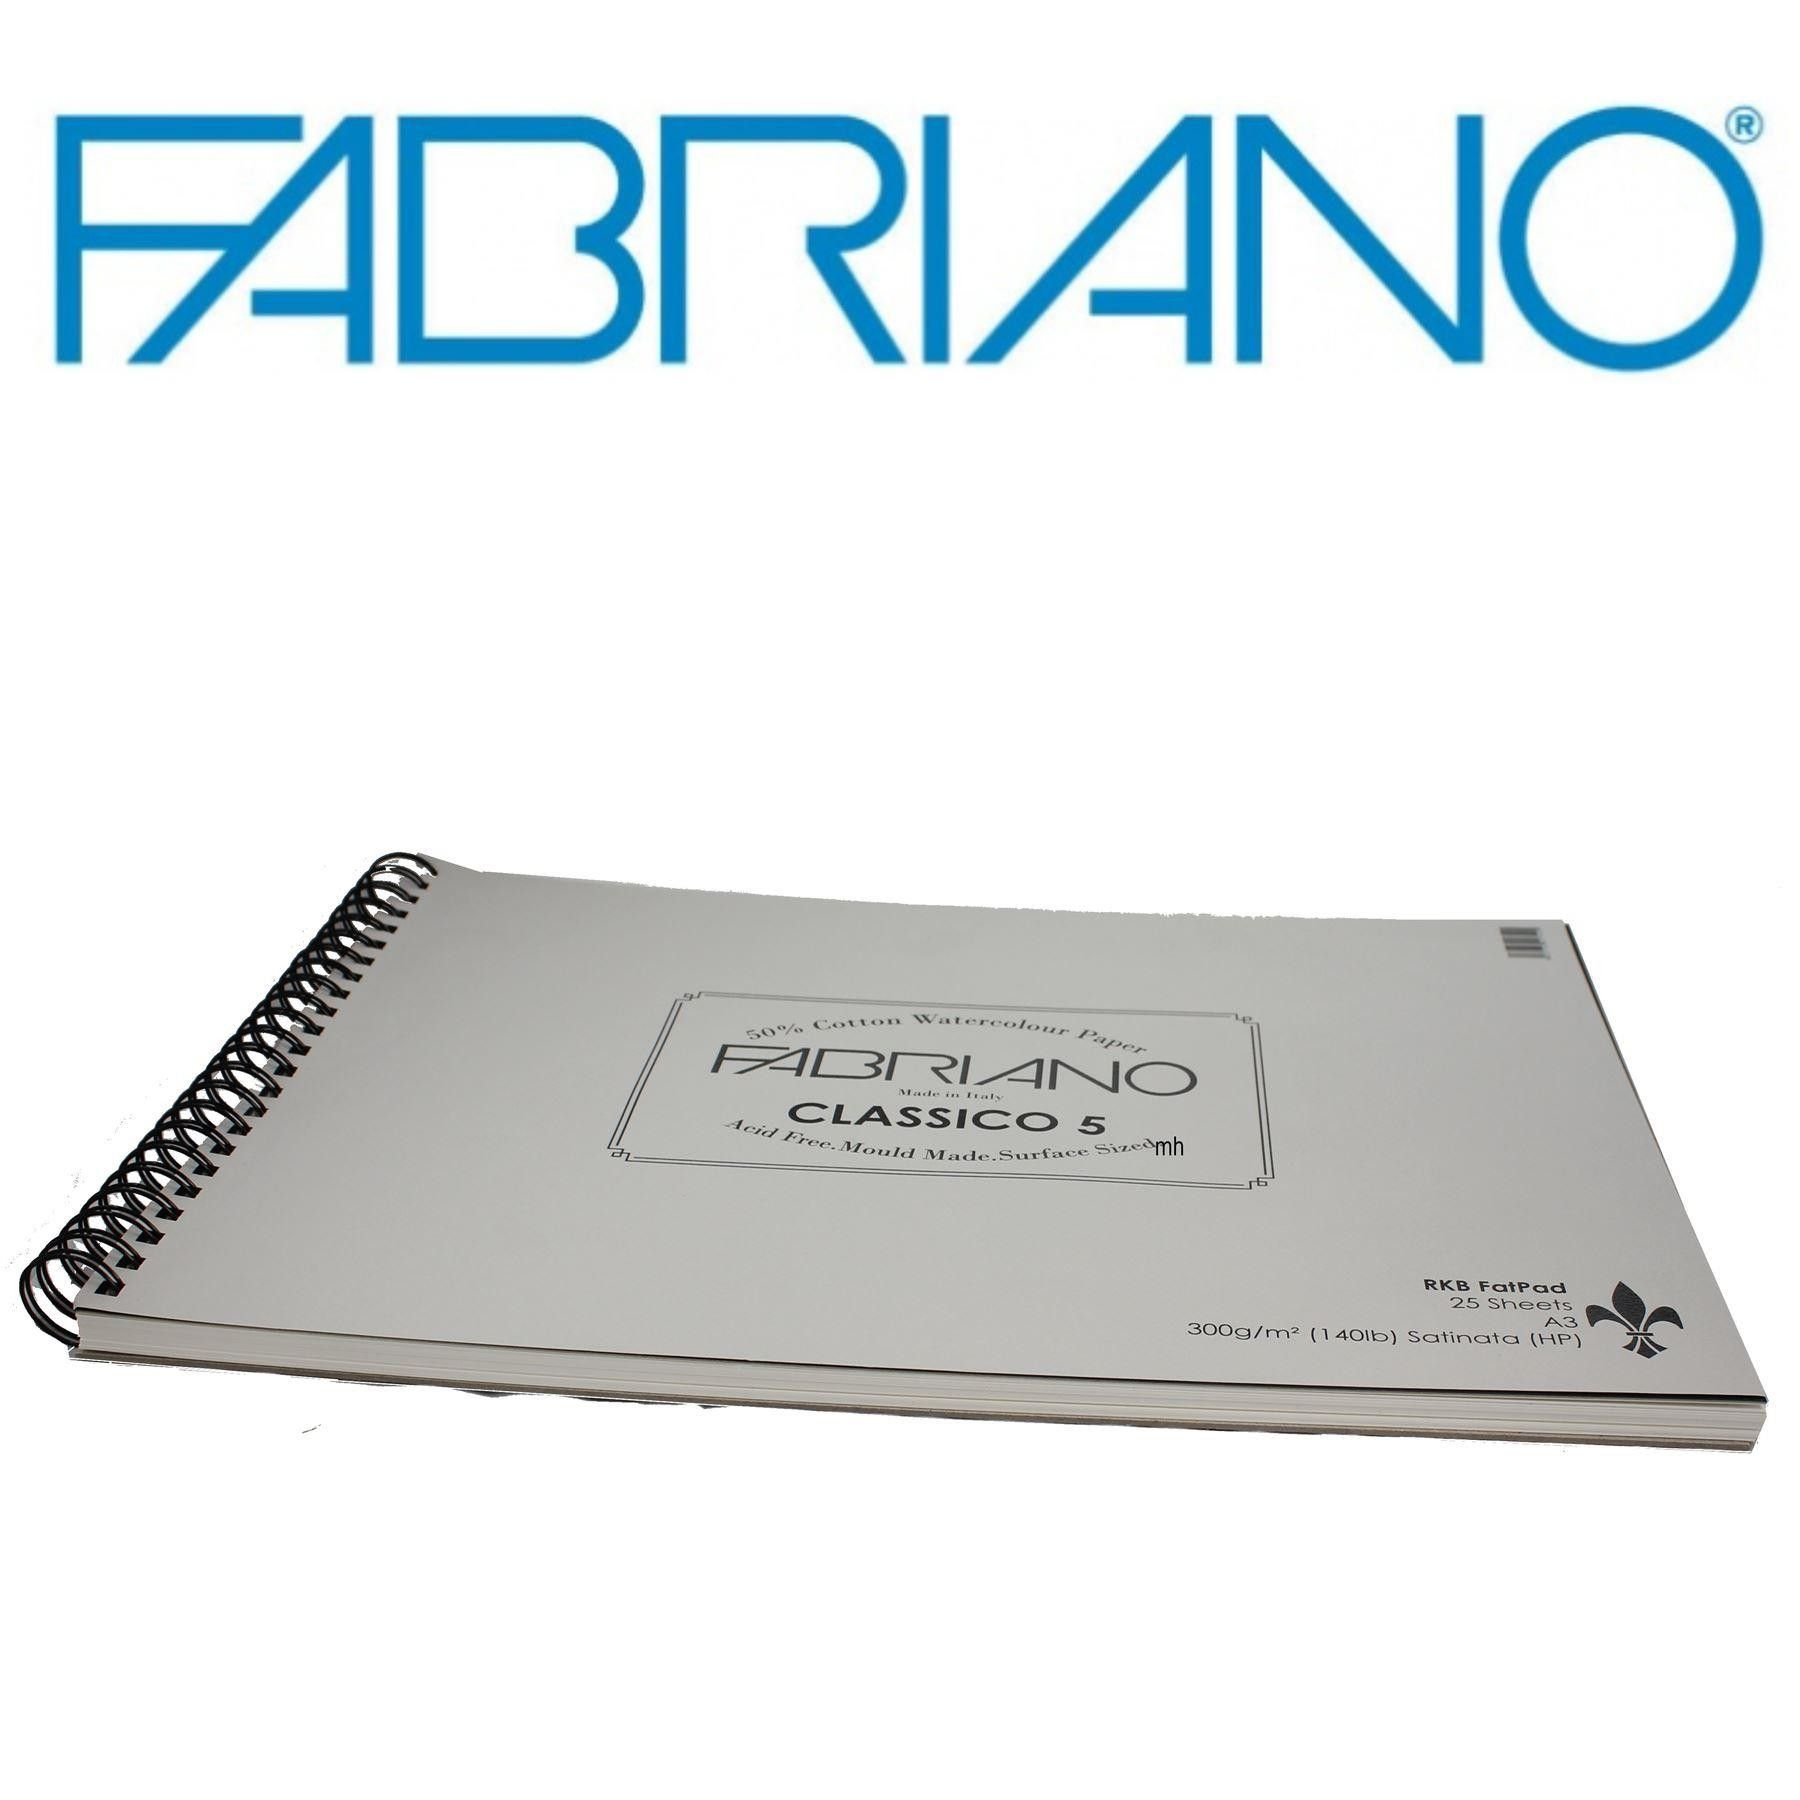 Fabriano 5 watercolour paper sheets 300gsm Hot Press Cold Press 50/% cotton paper